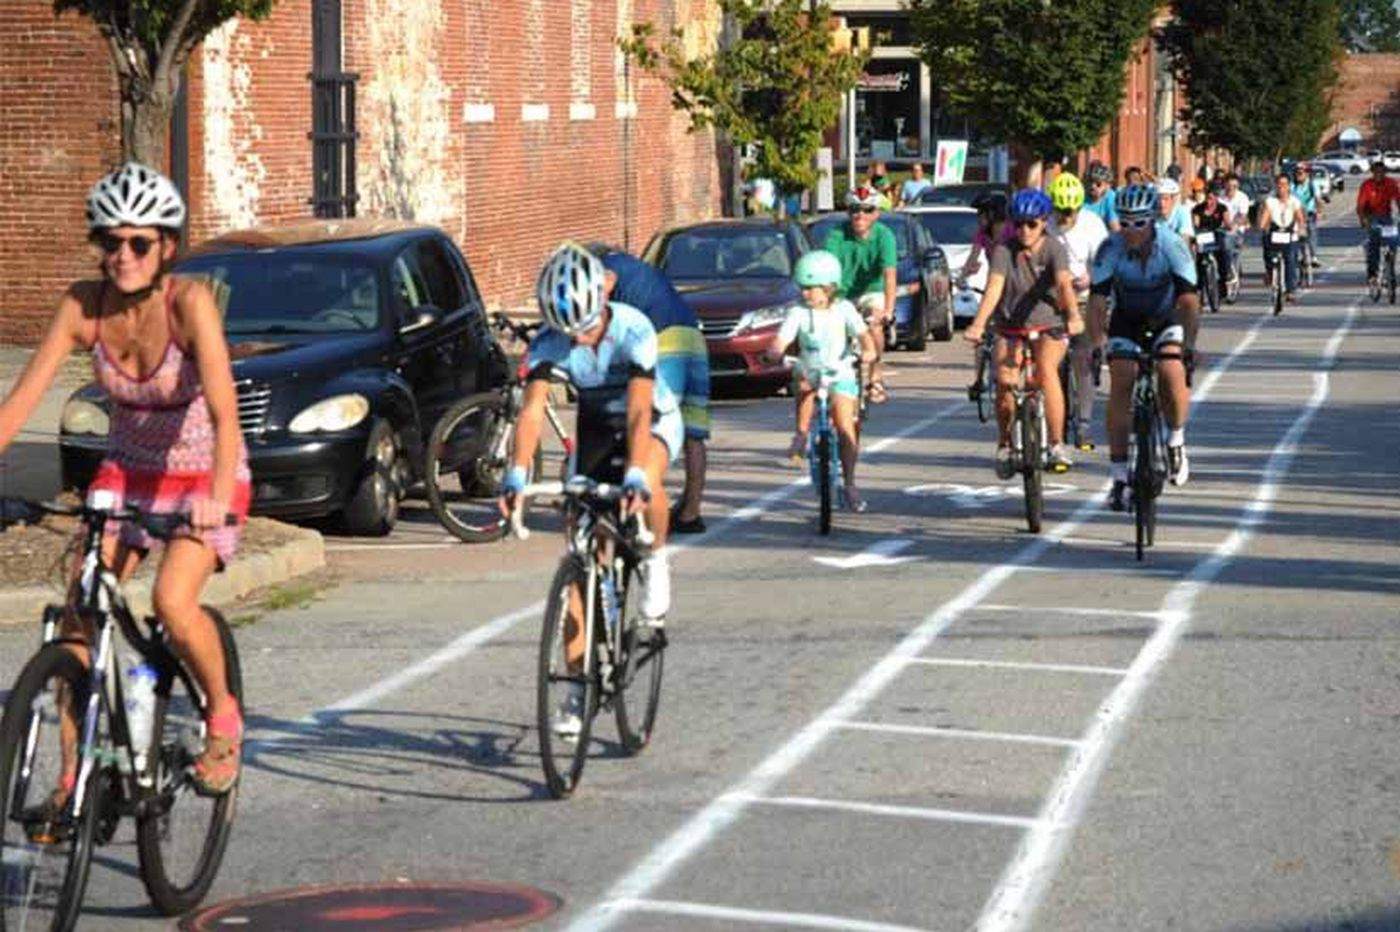 Temporary bike grids: How Macon, Ga., won the bike lane culture war | Ideas We Should Steal